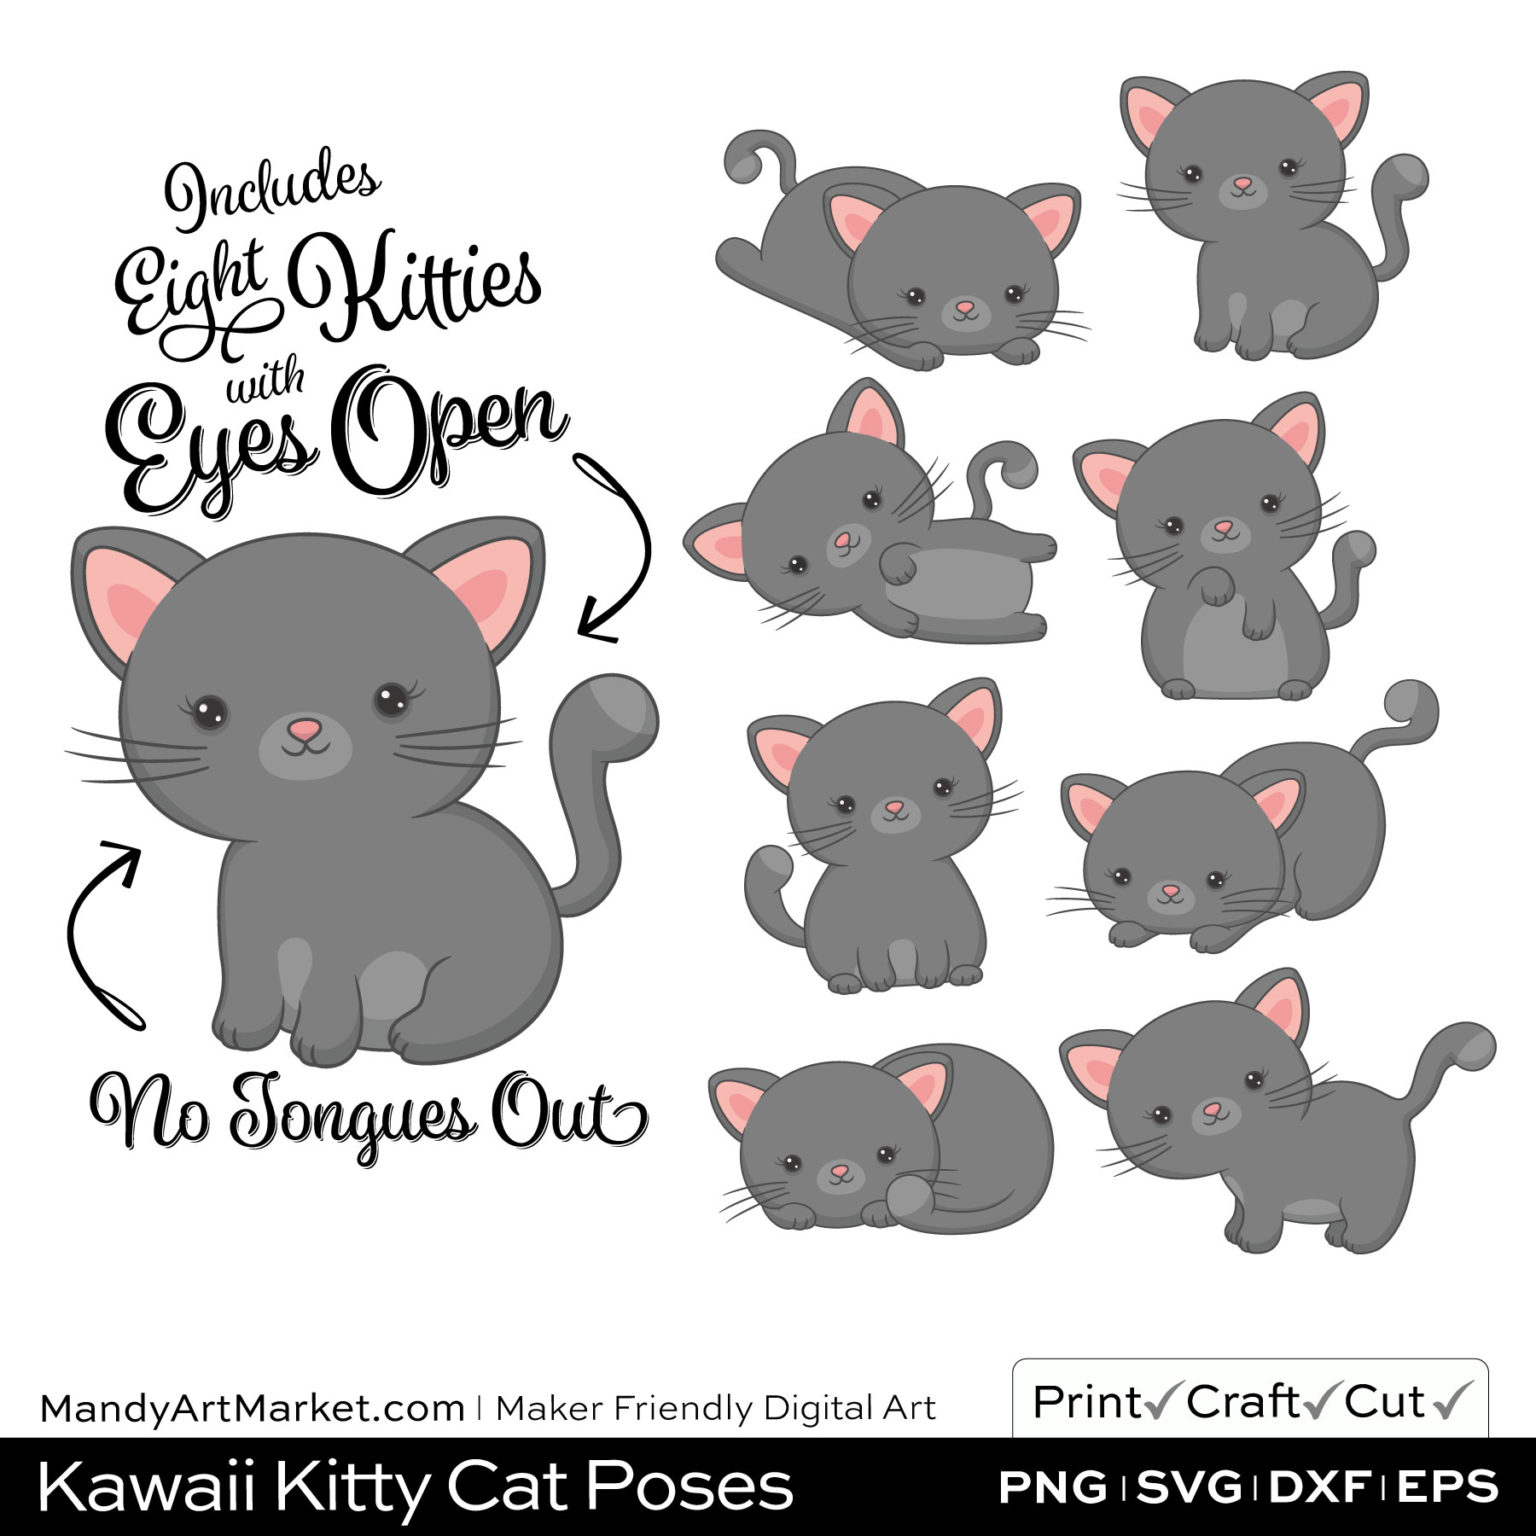 Pebble Gray Kawaii Kitty Cat Poses Clipart on Wood Background